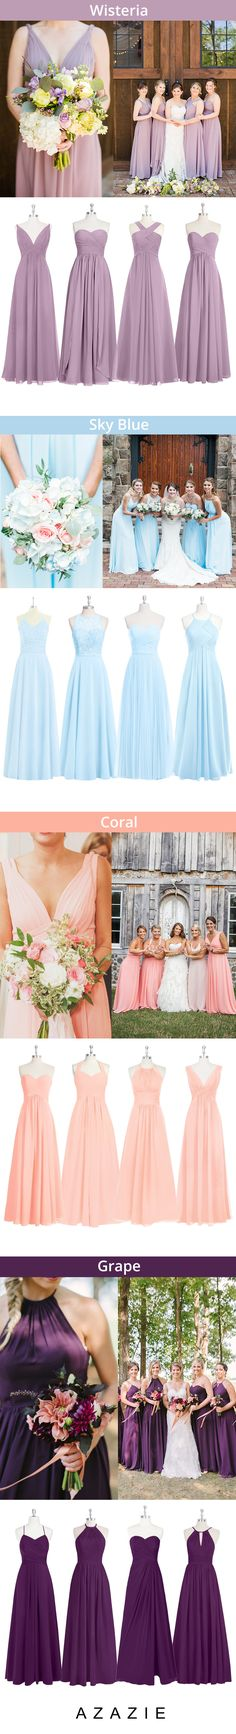 Mixing-and-matching your bridesmaids is easy! Azazie offers 50+ colors to choose from. We offer color swatches to make mixing & matching easier. Wedding tip: Try out our sample program before you purchase to make sure you are completely in love with a dress! Azazie has over 100 styles from delicate lace to bold satins. Shop our affordable bridesmaid dresses today!| 1st from clairedianaphotography.com; 2nd from annaelizabethphotography.com; 3rd kristaleephotography.com; 4th samstroudphoto.com